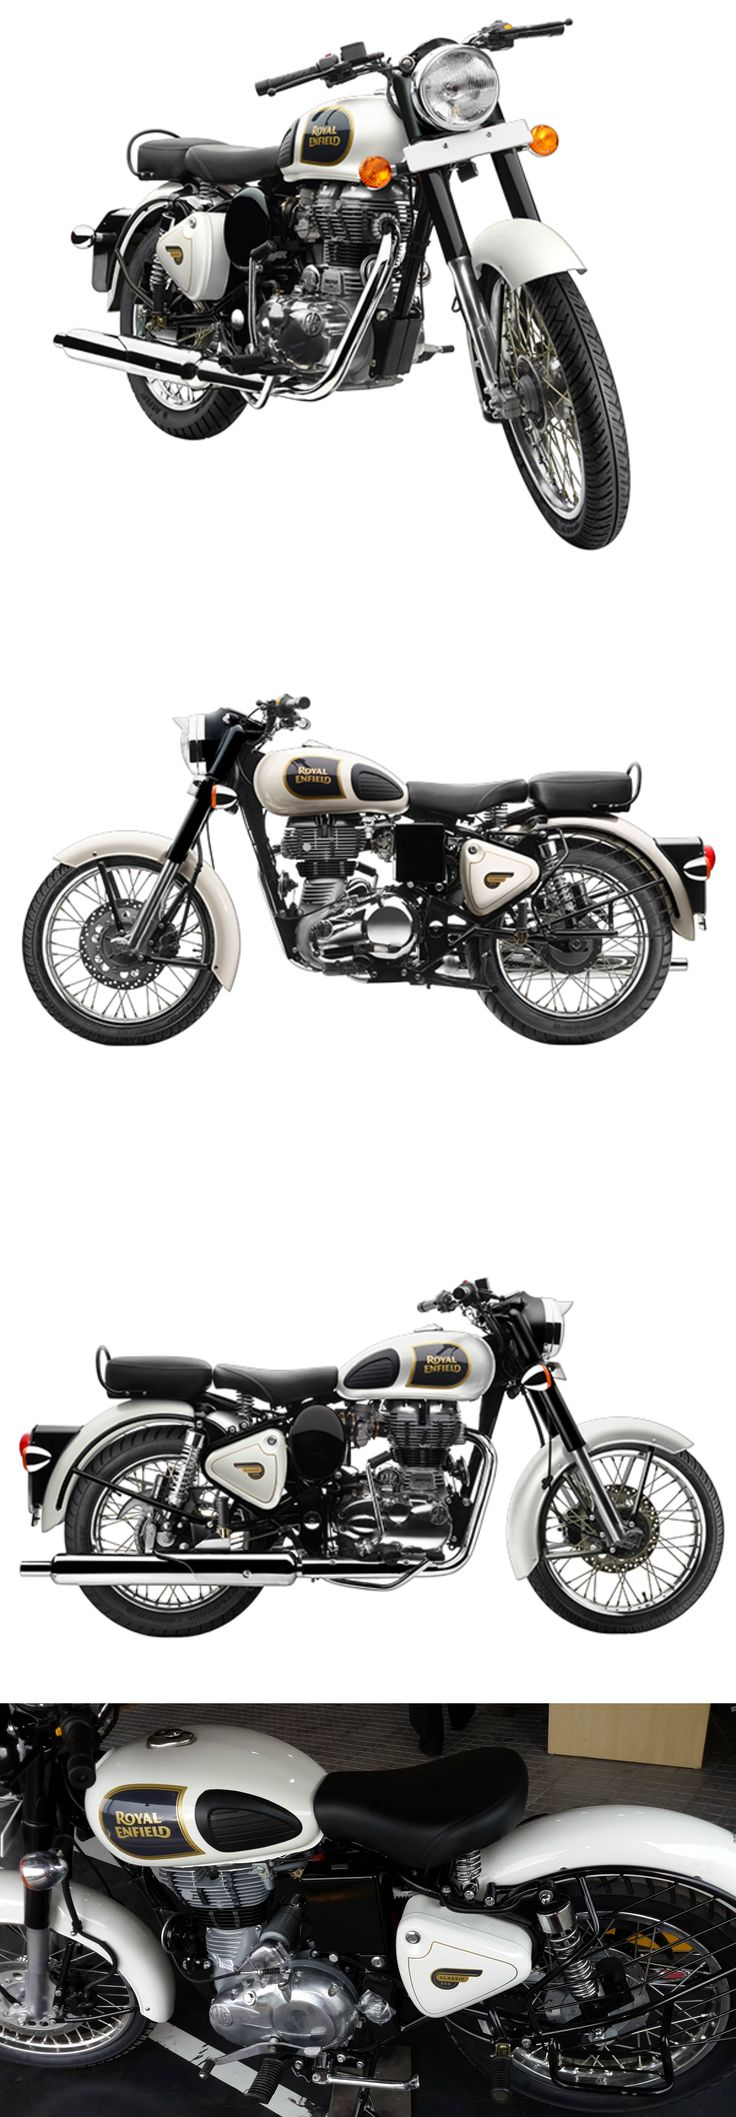 Royal enfield starts off new chennai based production unit